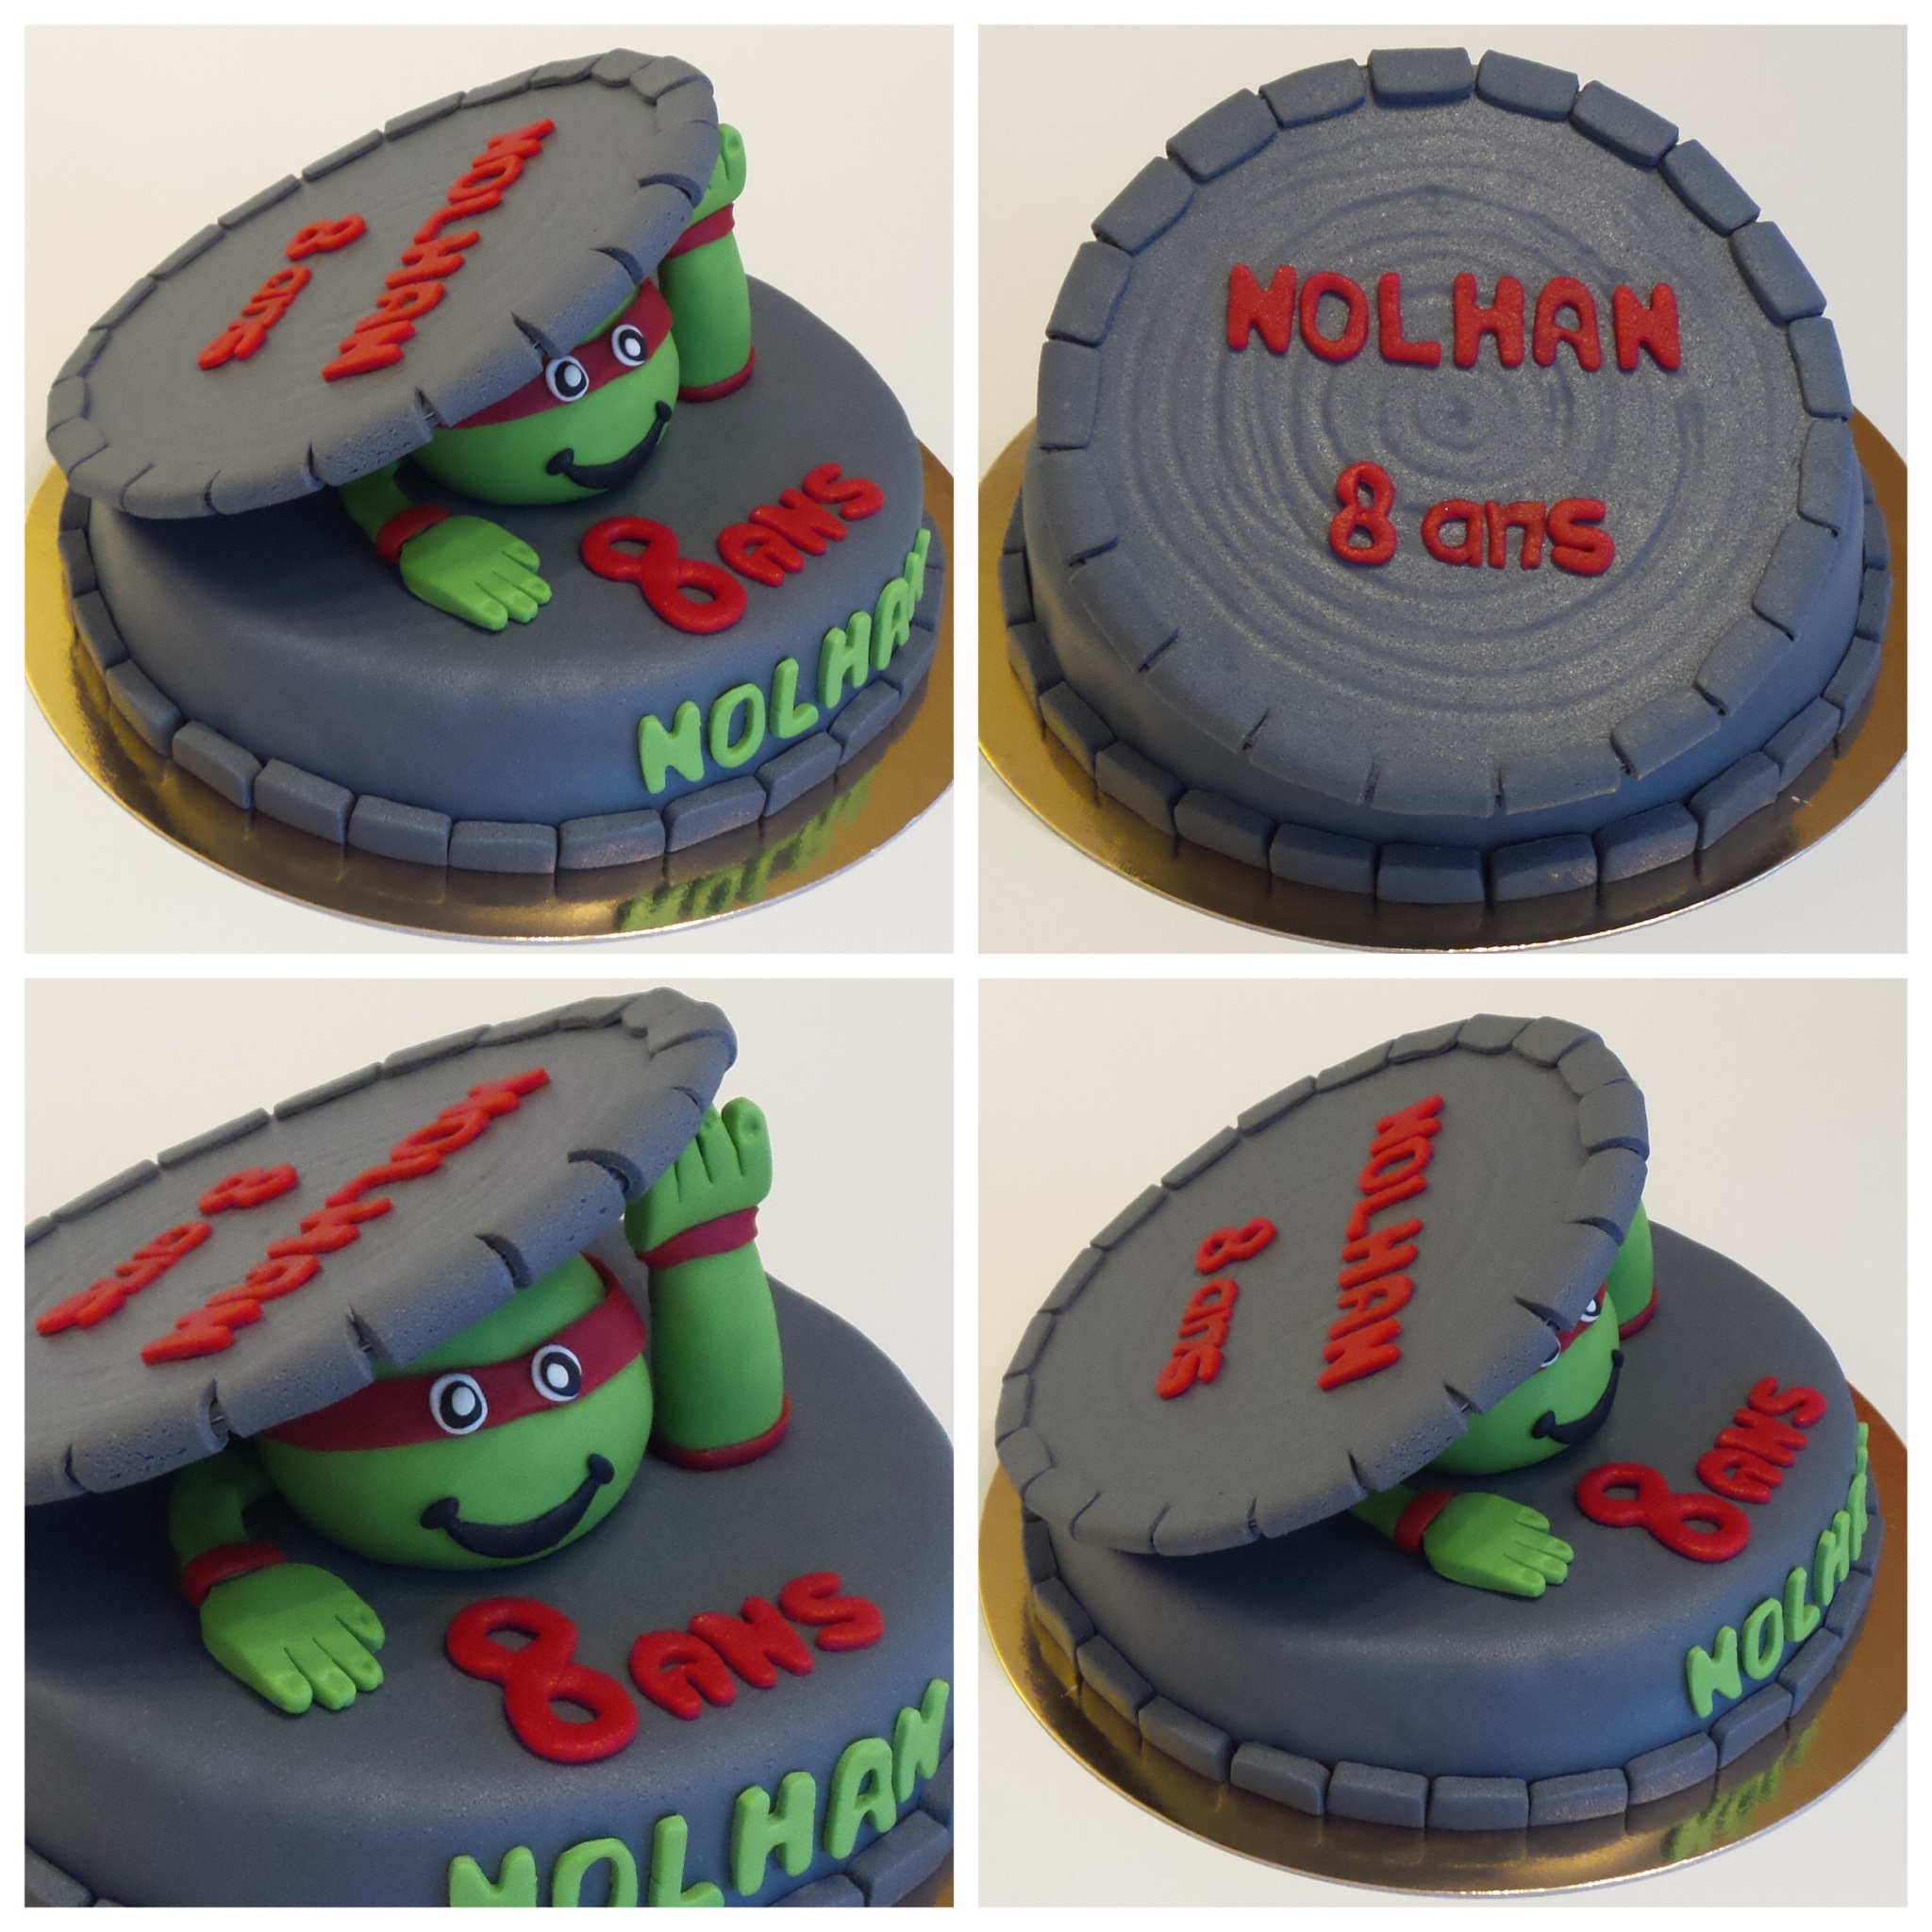 Gateau tortue ninja michelangelo home baking for you - Michaelangelo tortue ninja ...